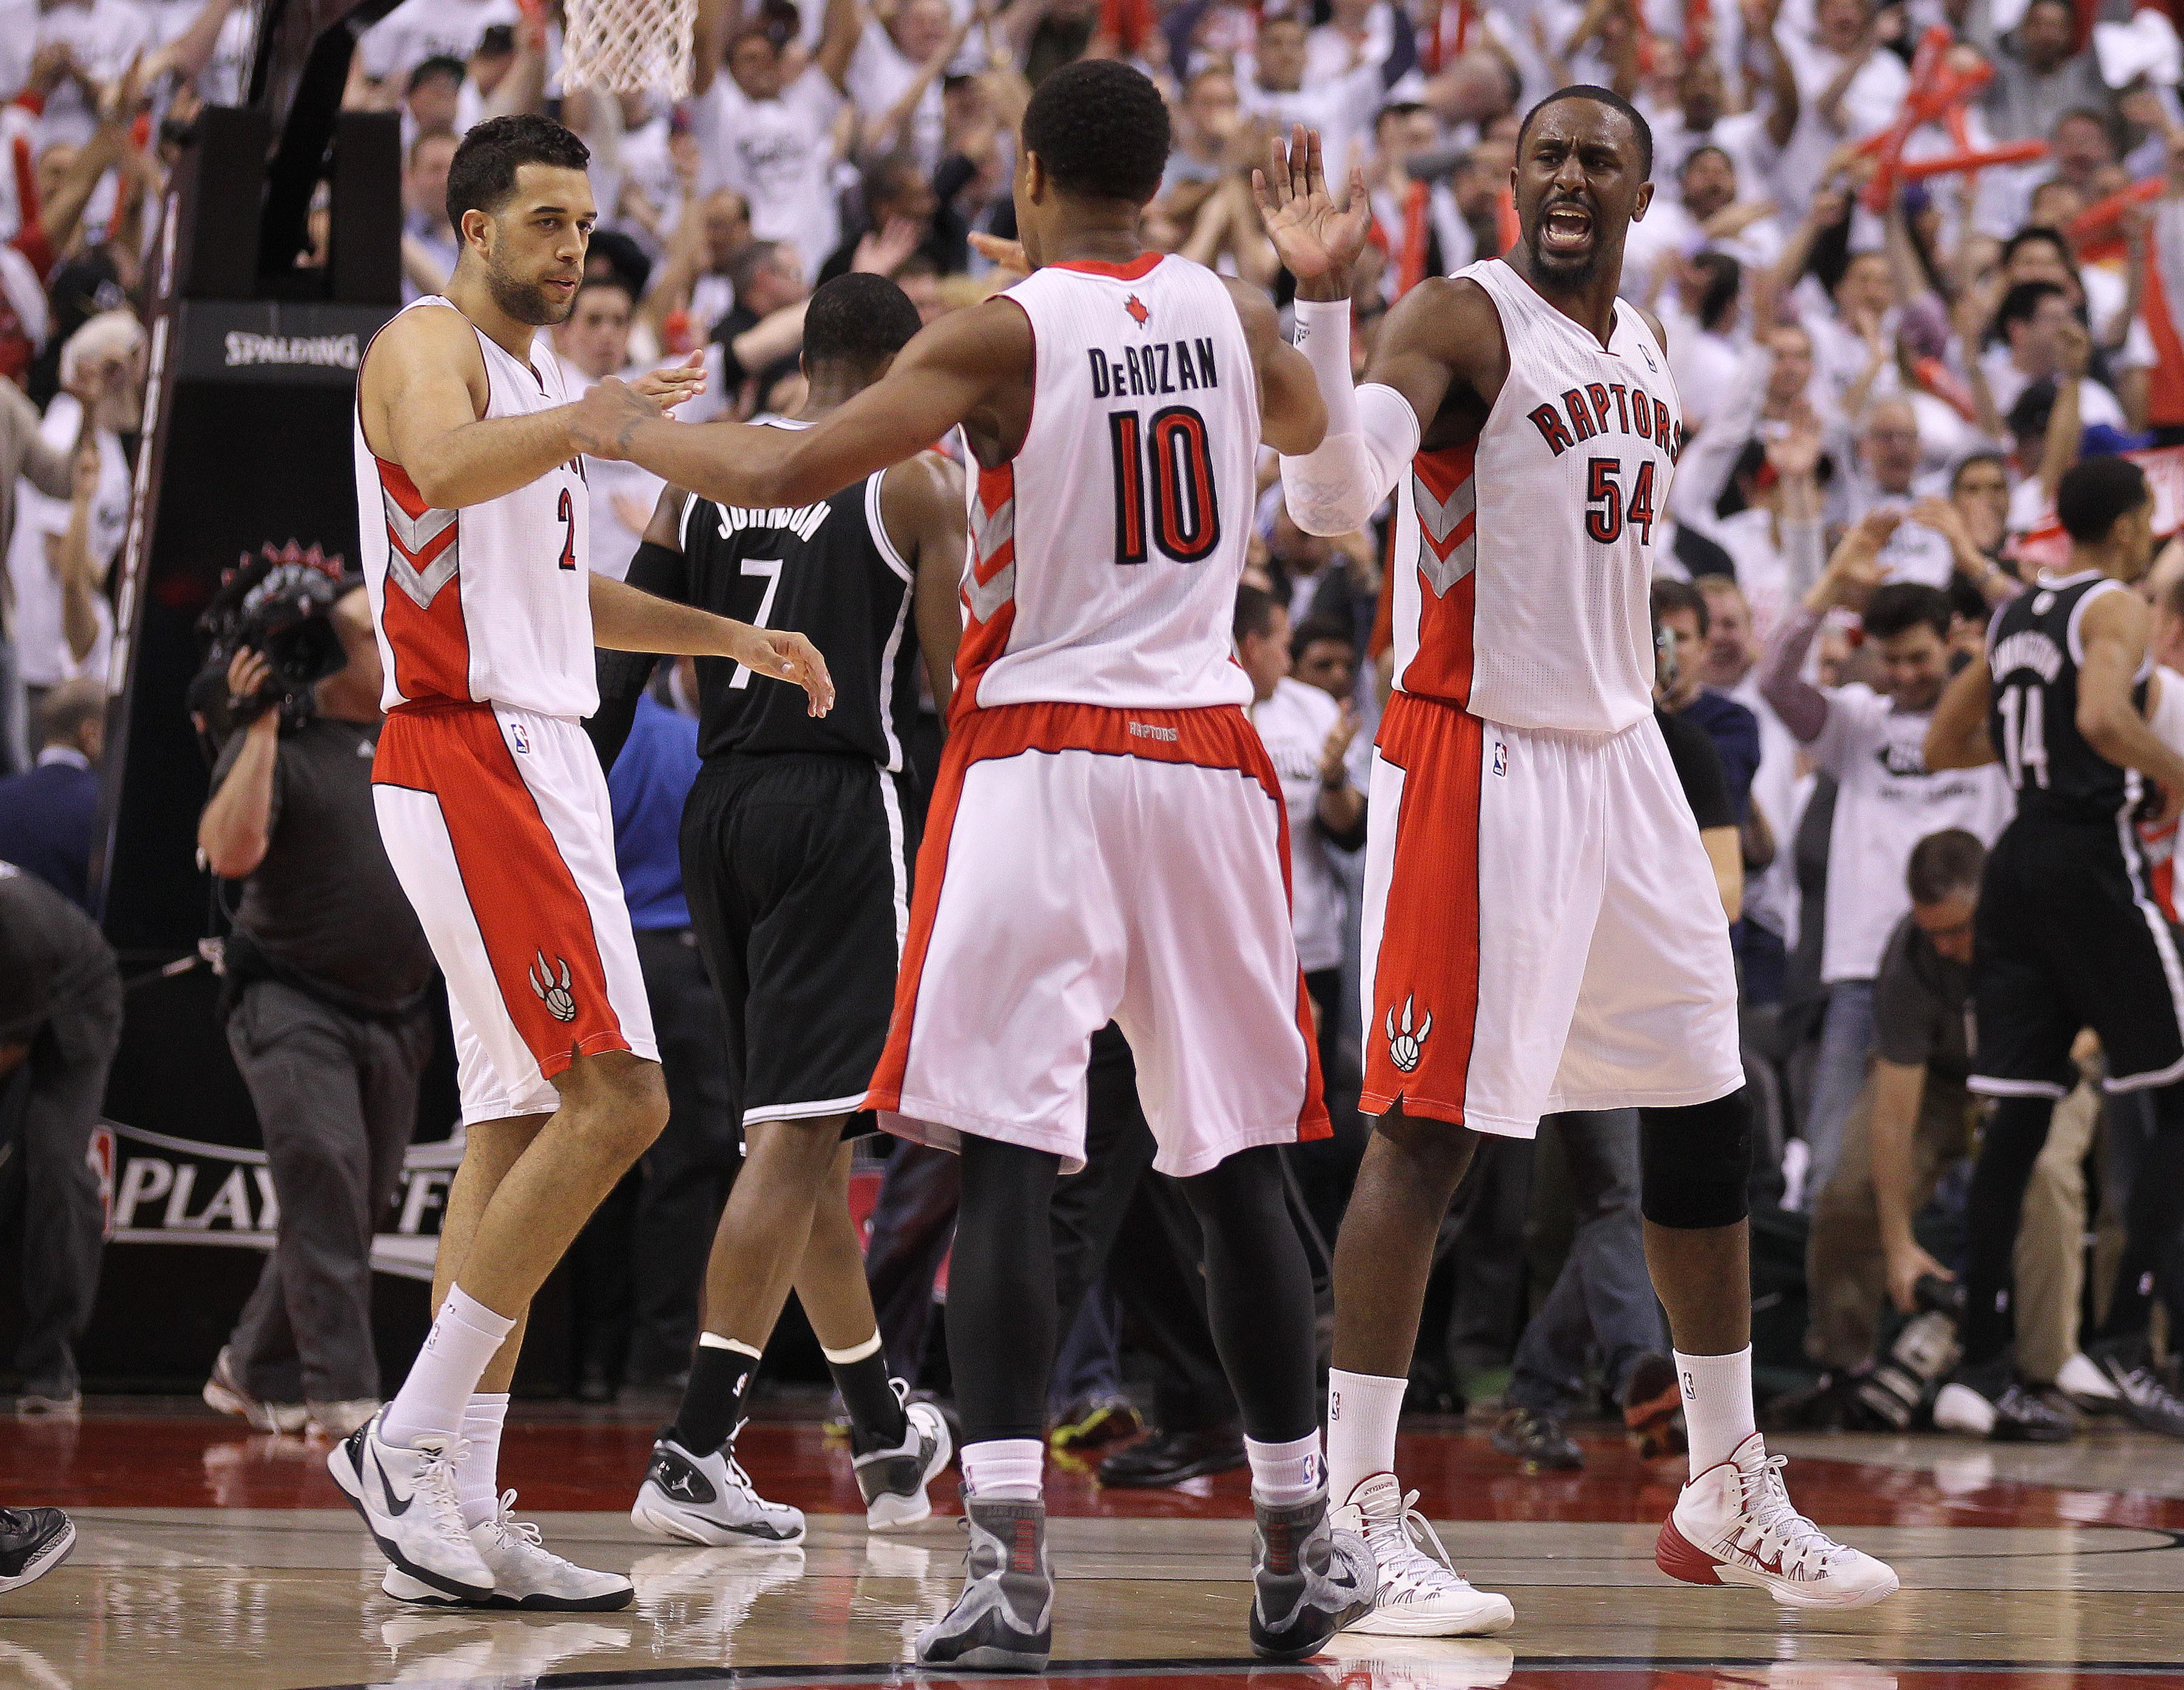 TORONTO, ON - APRIL 22: DeMar DeRozan #10 of the Toronto Raptors celebrates a win with teammates Patrick Patterson #54 and Landry Fields #2 against the Brooklyn Nets in Game Two of the NBA Eastern Conference Quarterfinals at the Air Canada Centre on April 22, 2014 in Toronto, Ontario, Canada. The Raptors defeated the Nets 100-95 to even the series 1-1. NOTE TO USER: user expressly acknowledges and agrees that, by downloading and/or using this Photograph, user is consenting to the terms and conditions of the Getty Images License Agreement. (Photo by Claus Andersen/Getty Images)